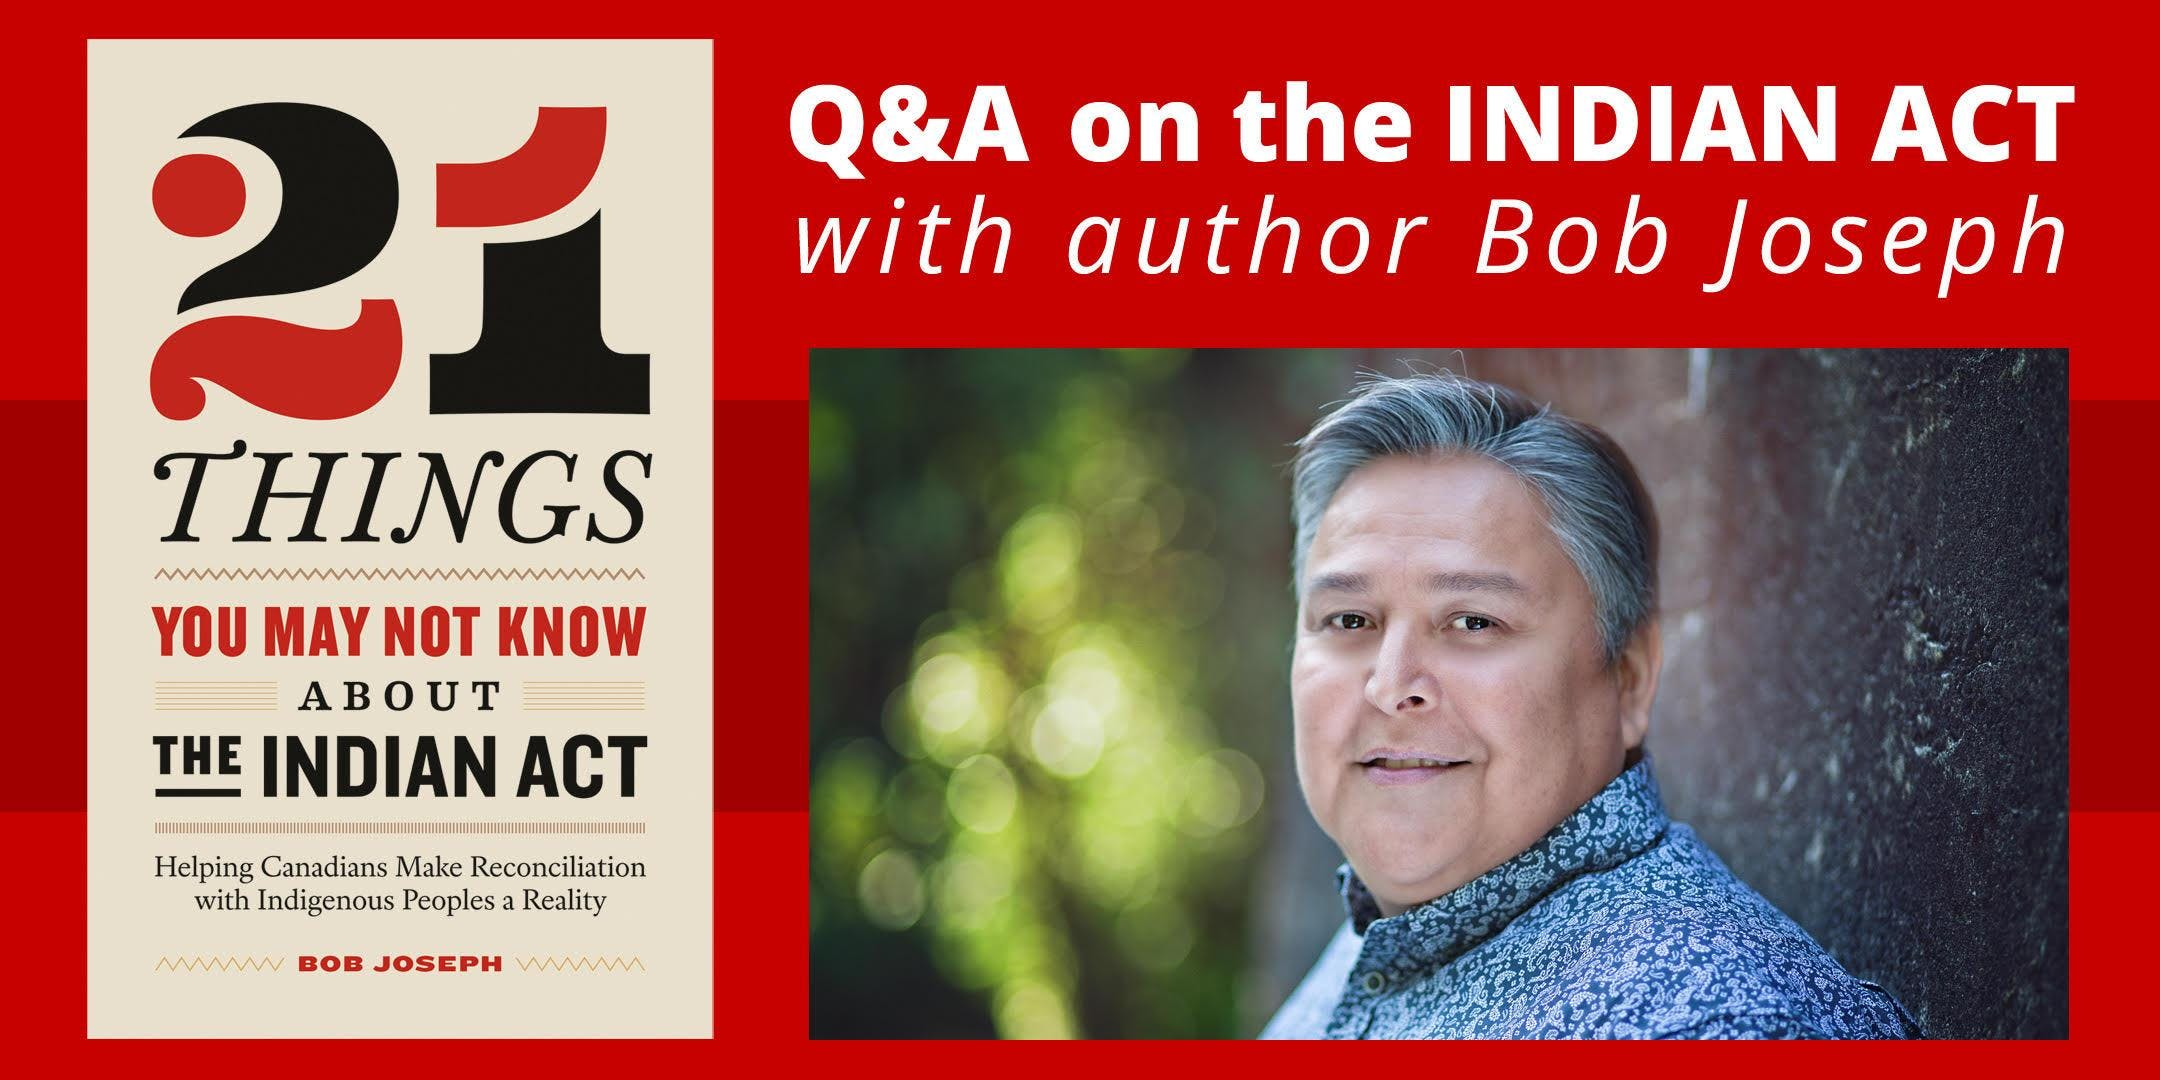 Q & A On the Indian Act with author Bob Josep